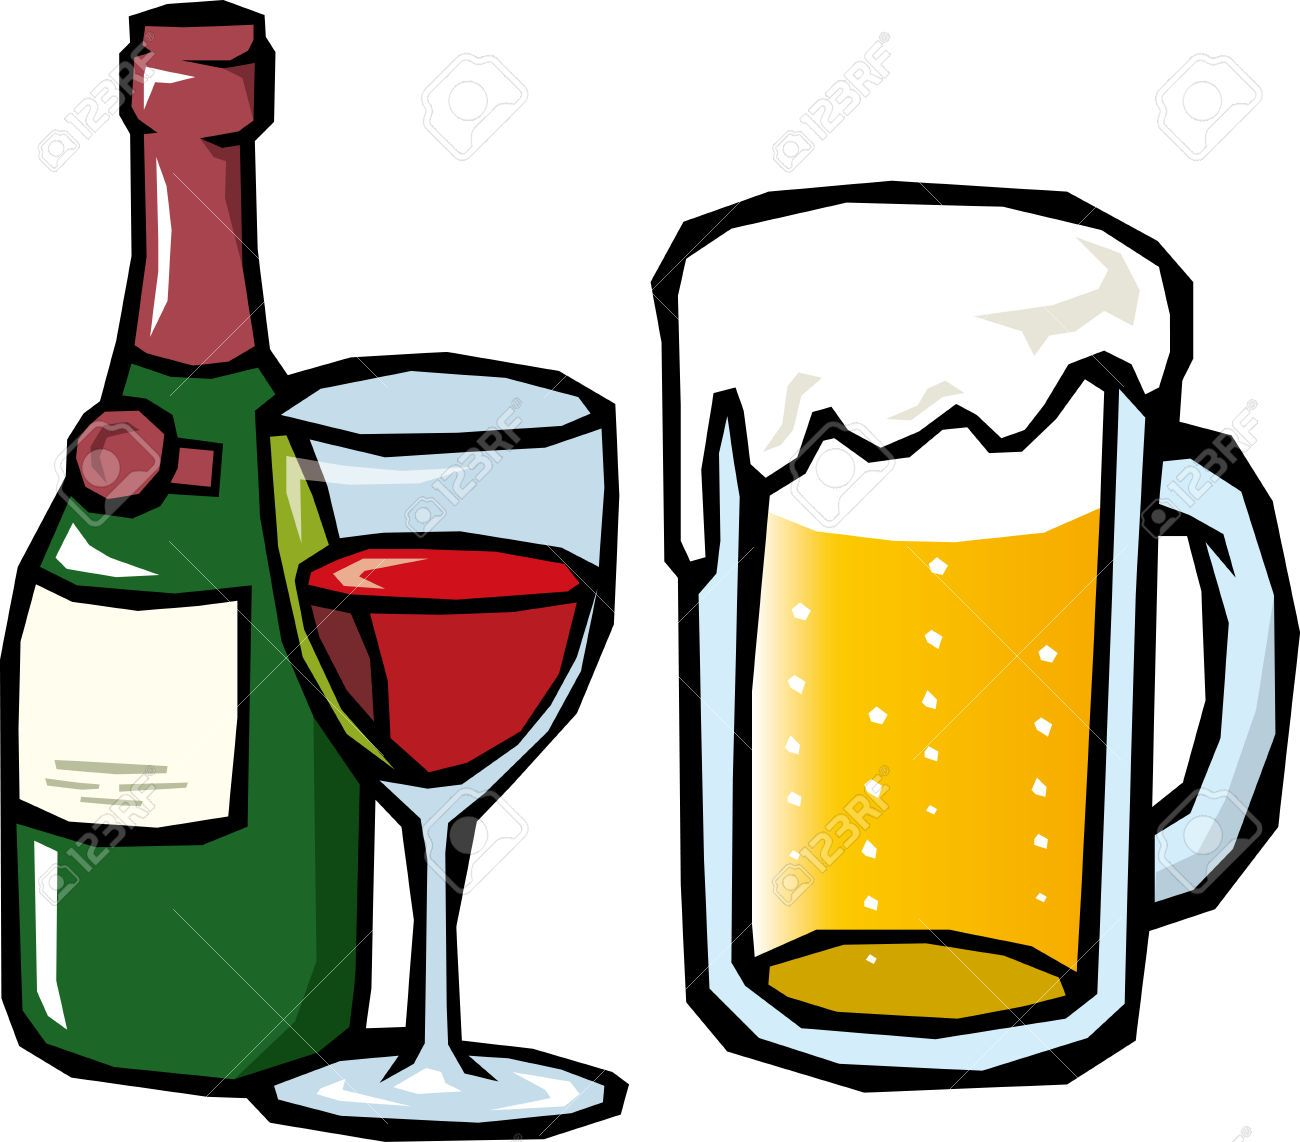 Free clipart images one beer mug red graphic library download Beer clip art black and white free clipart images 3 | Food and drink ... graphic library download